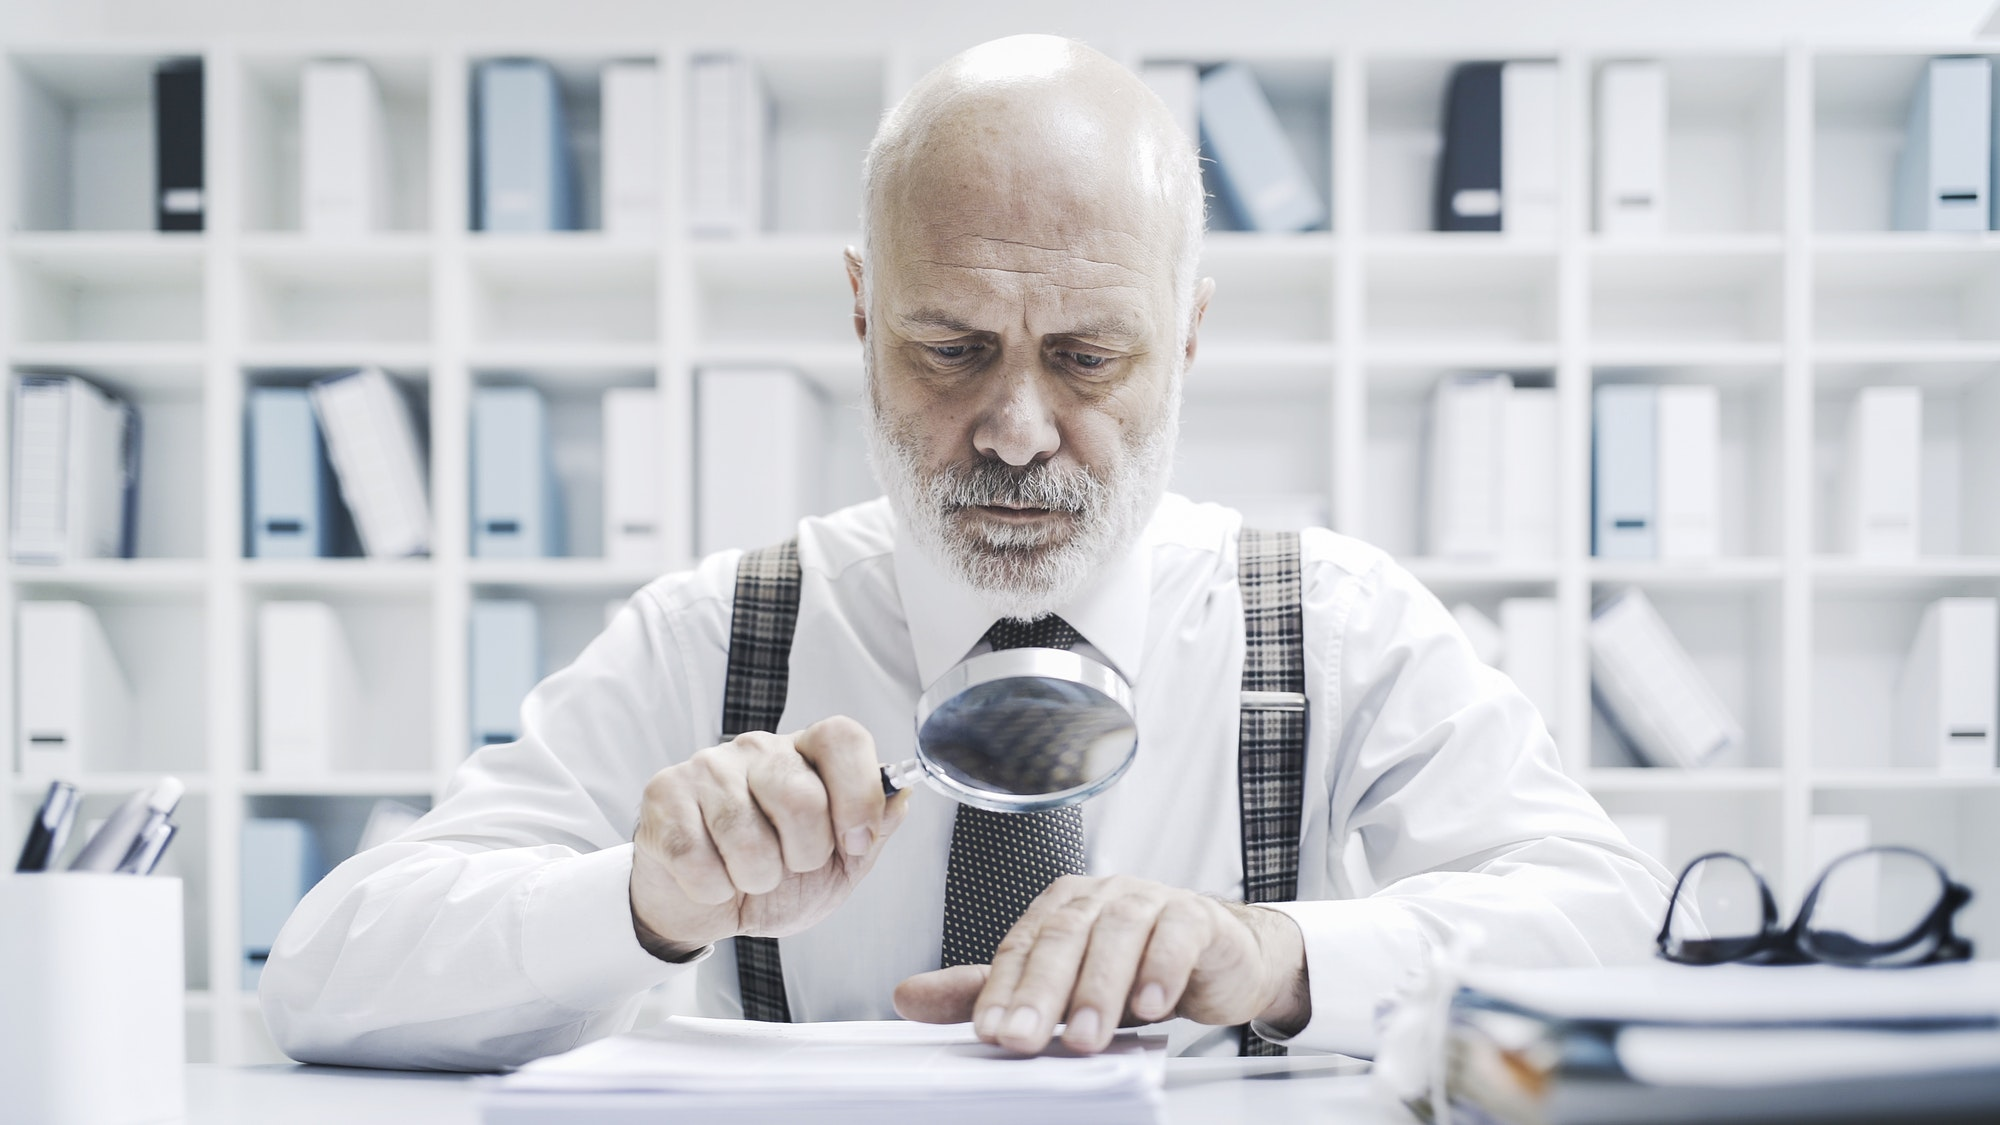 Corporate businessman checking paperwork with a magnifier